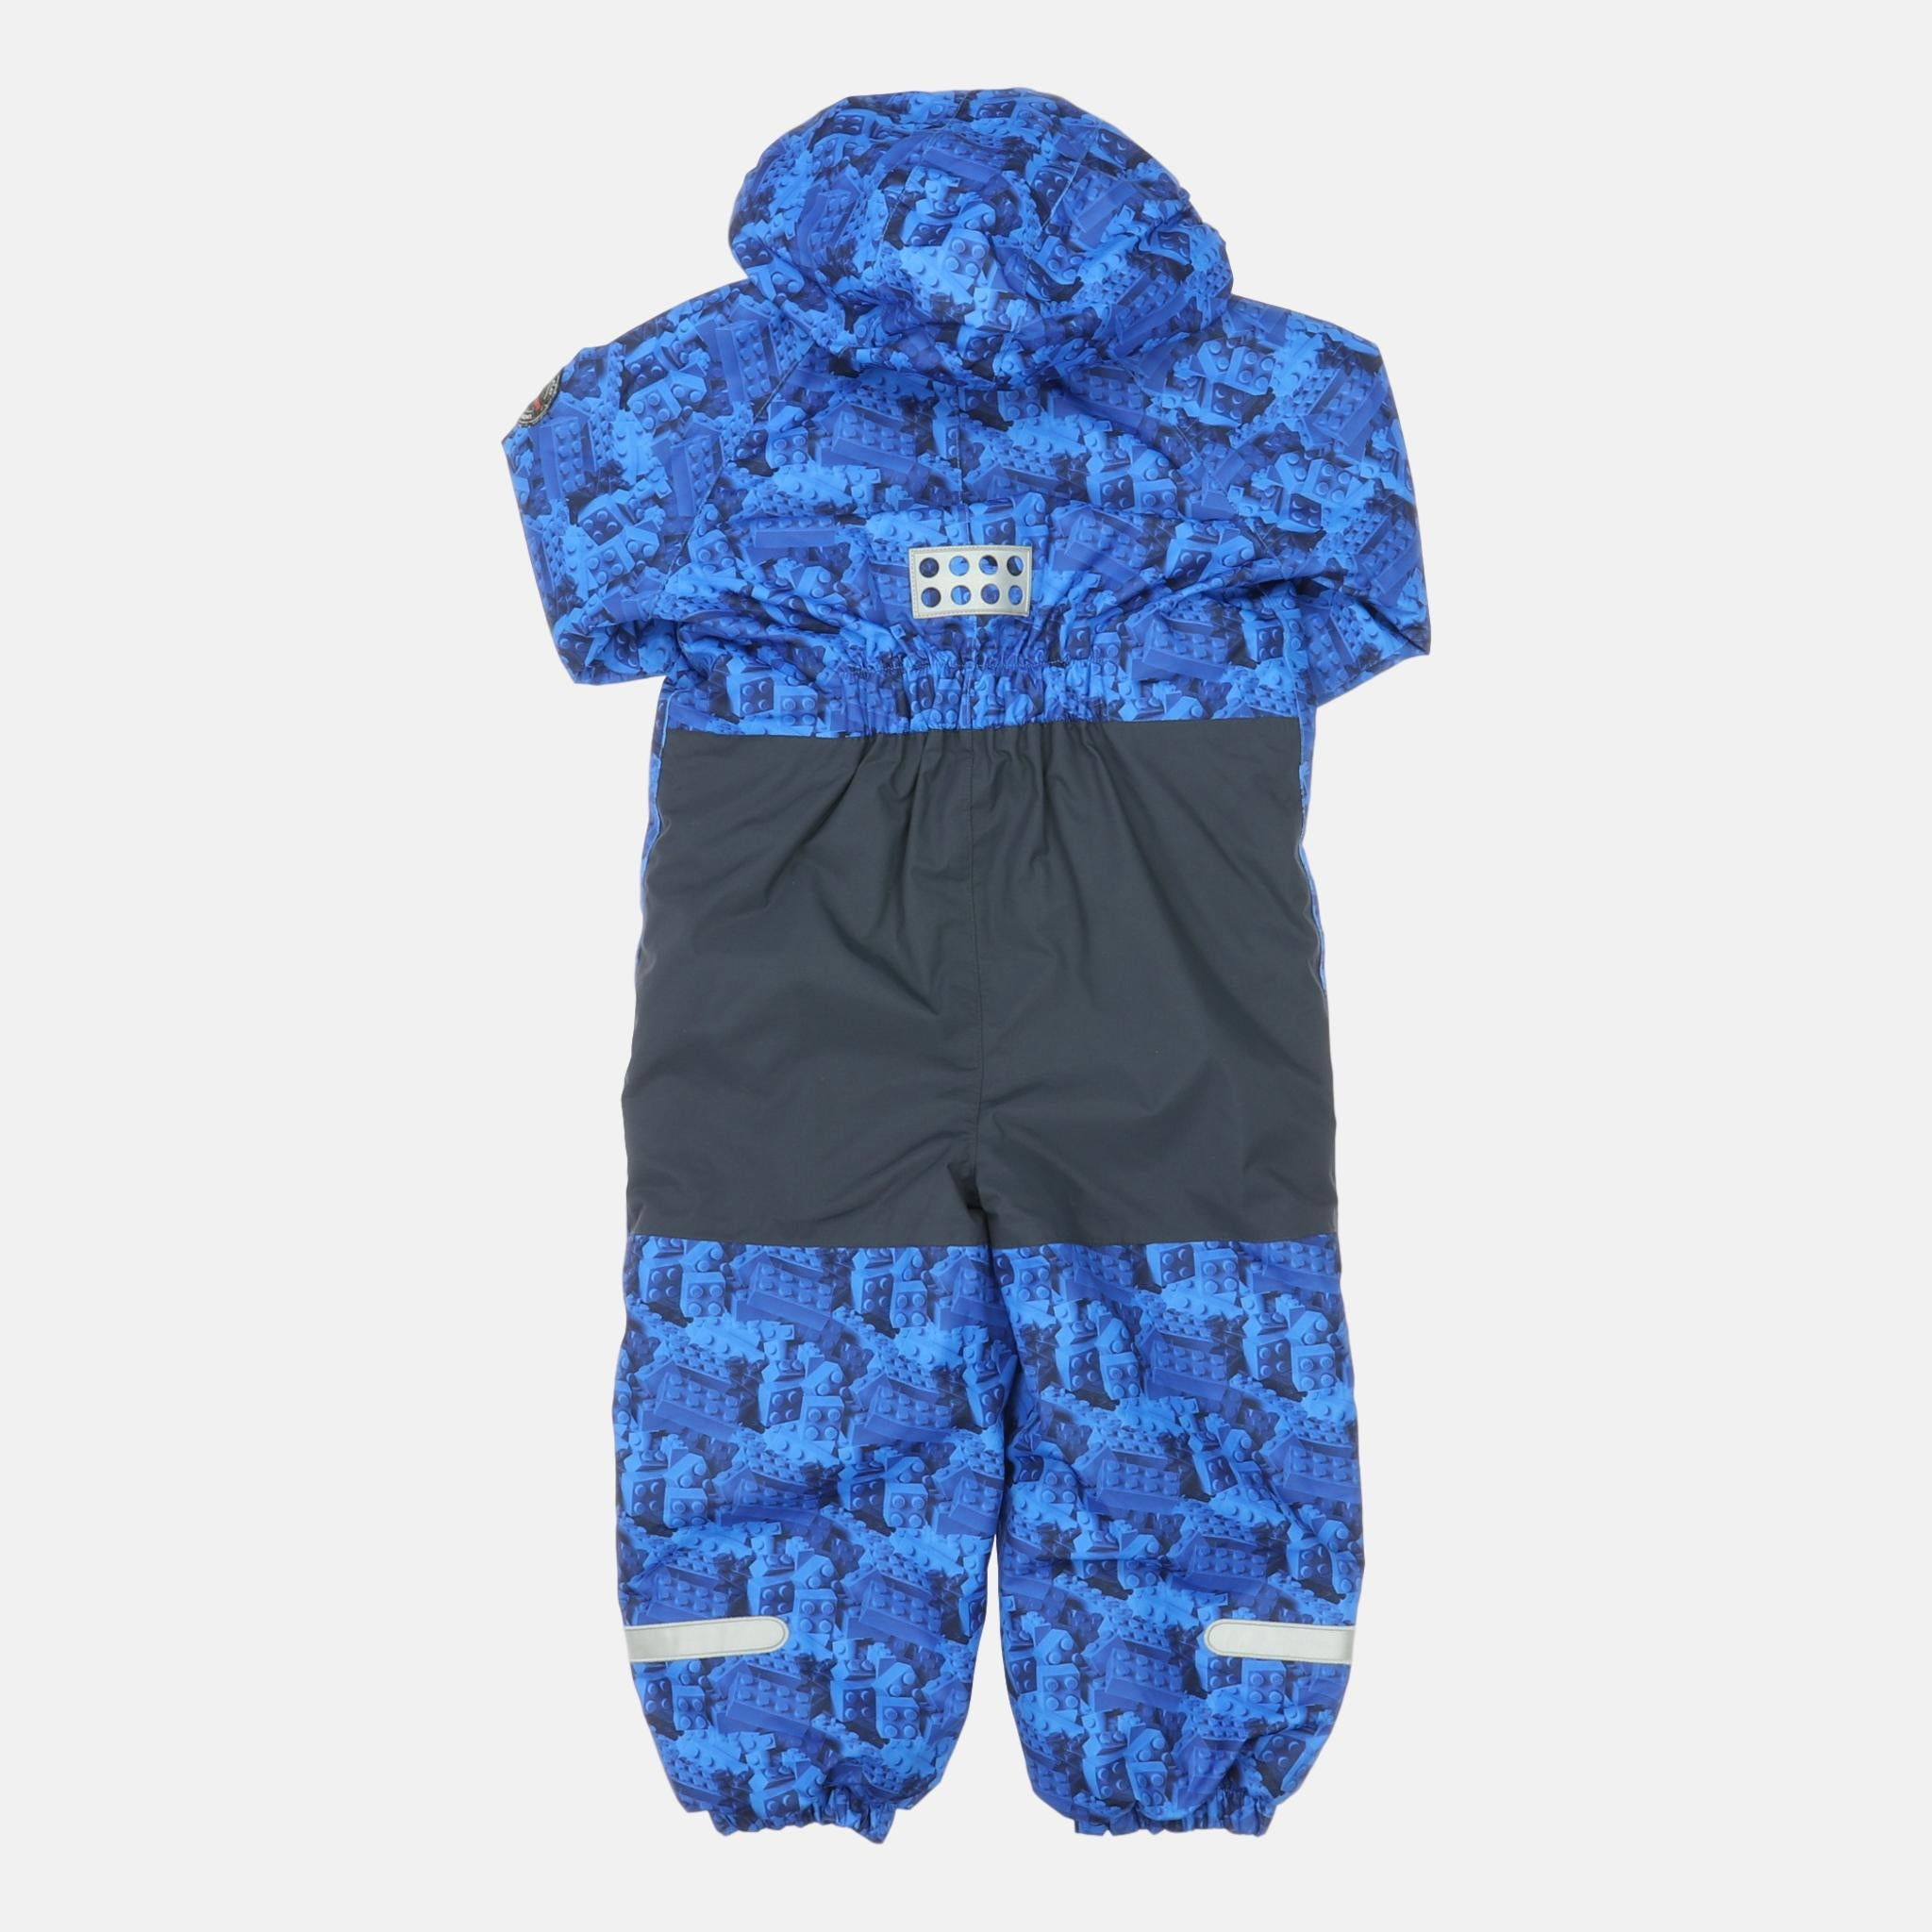 Snow Suit, 3-4 Years